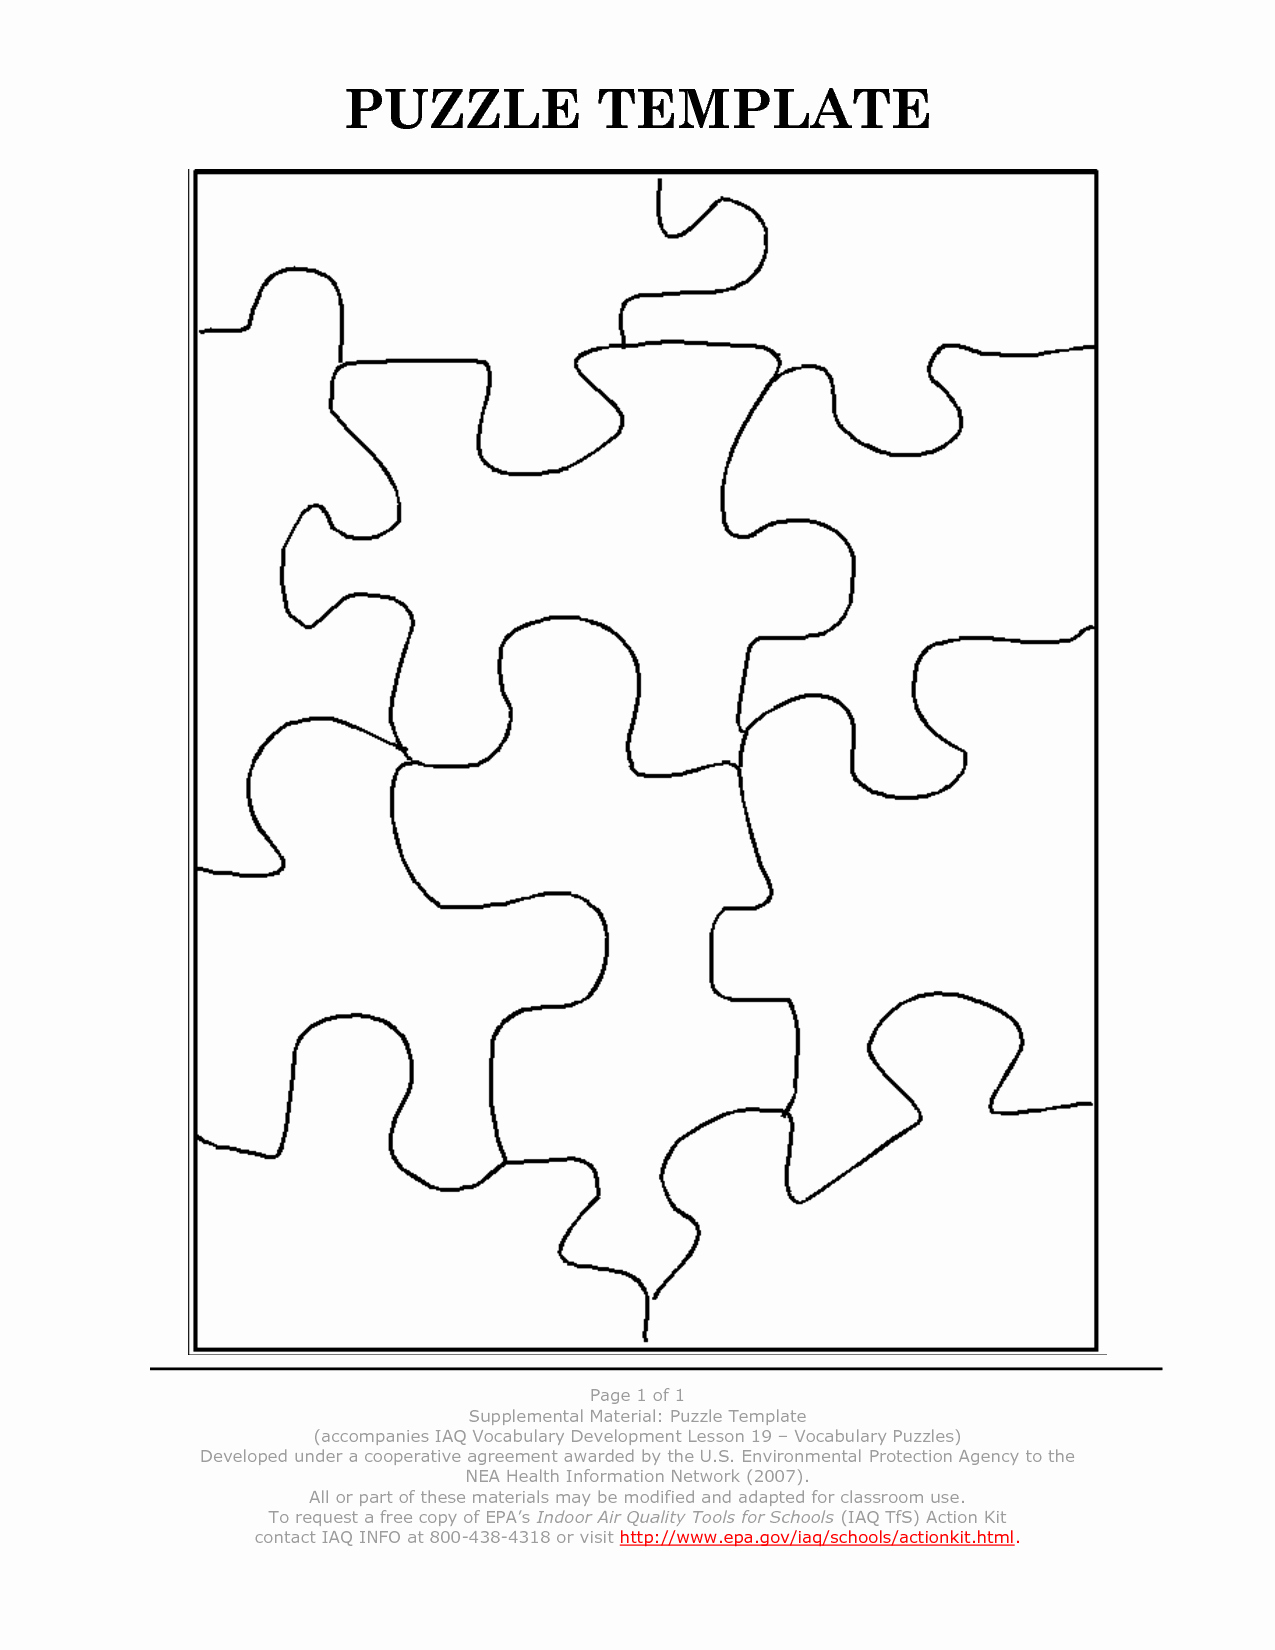 9 Piece Puzzle Template Inspirational Best S Of 9 Piece Jigsaw Puzzle Template 9 Piece